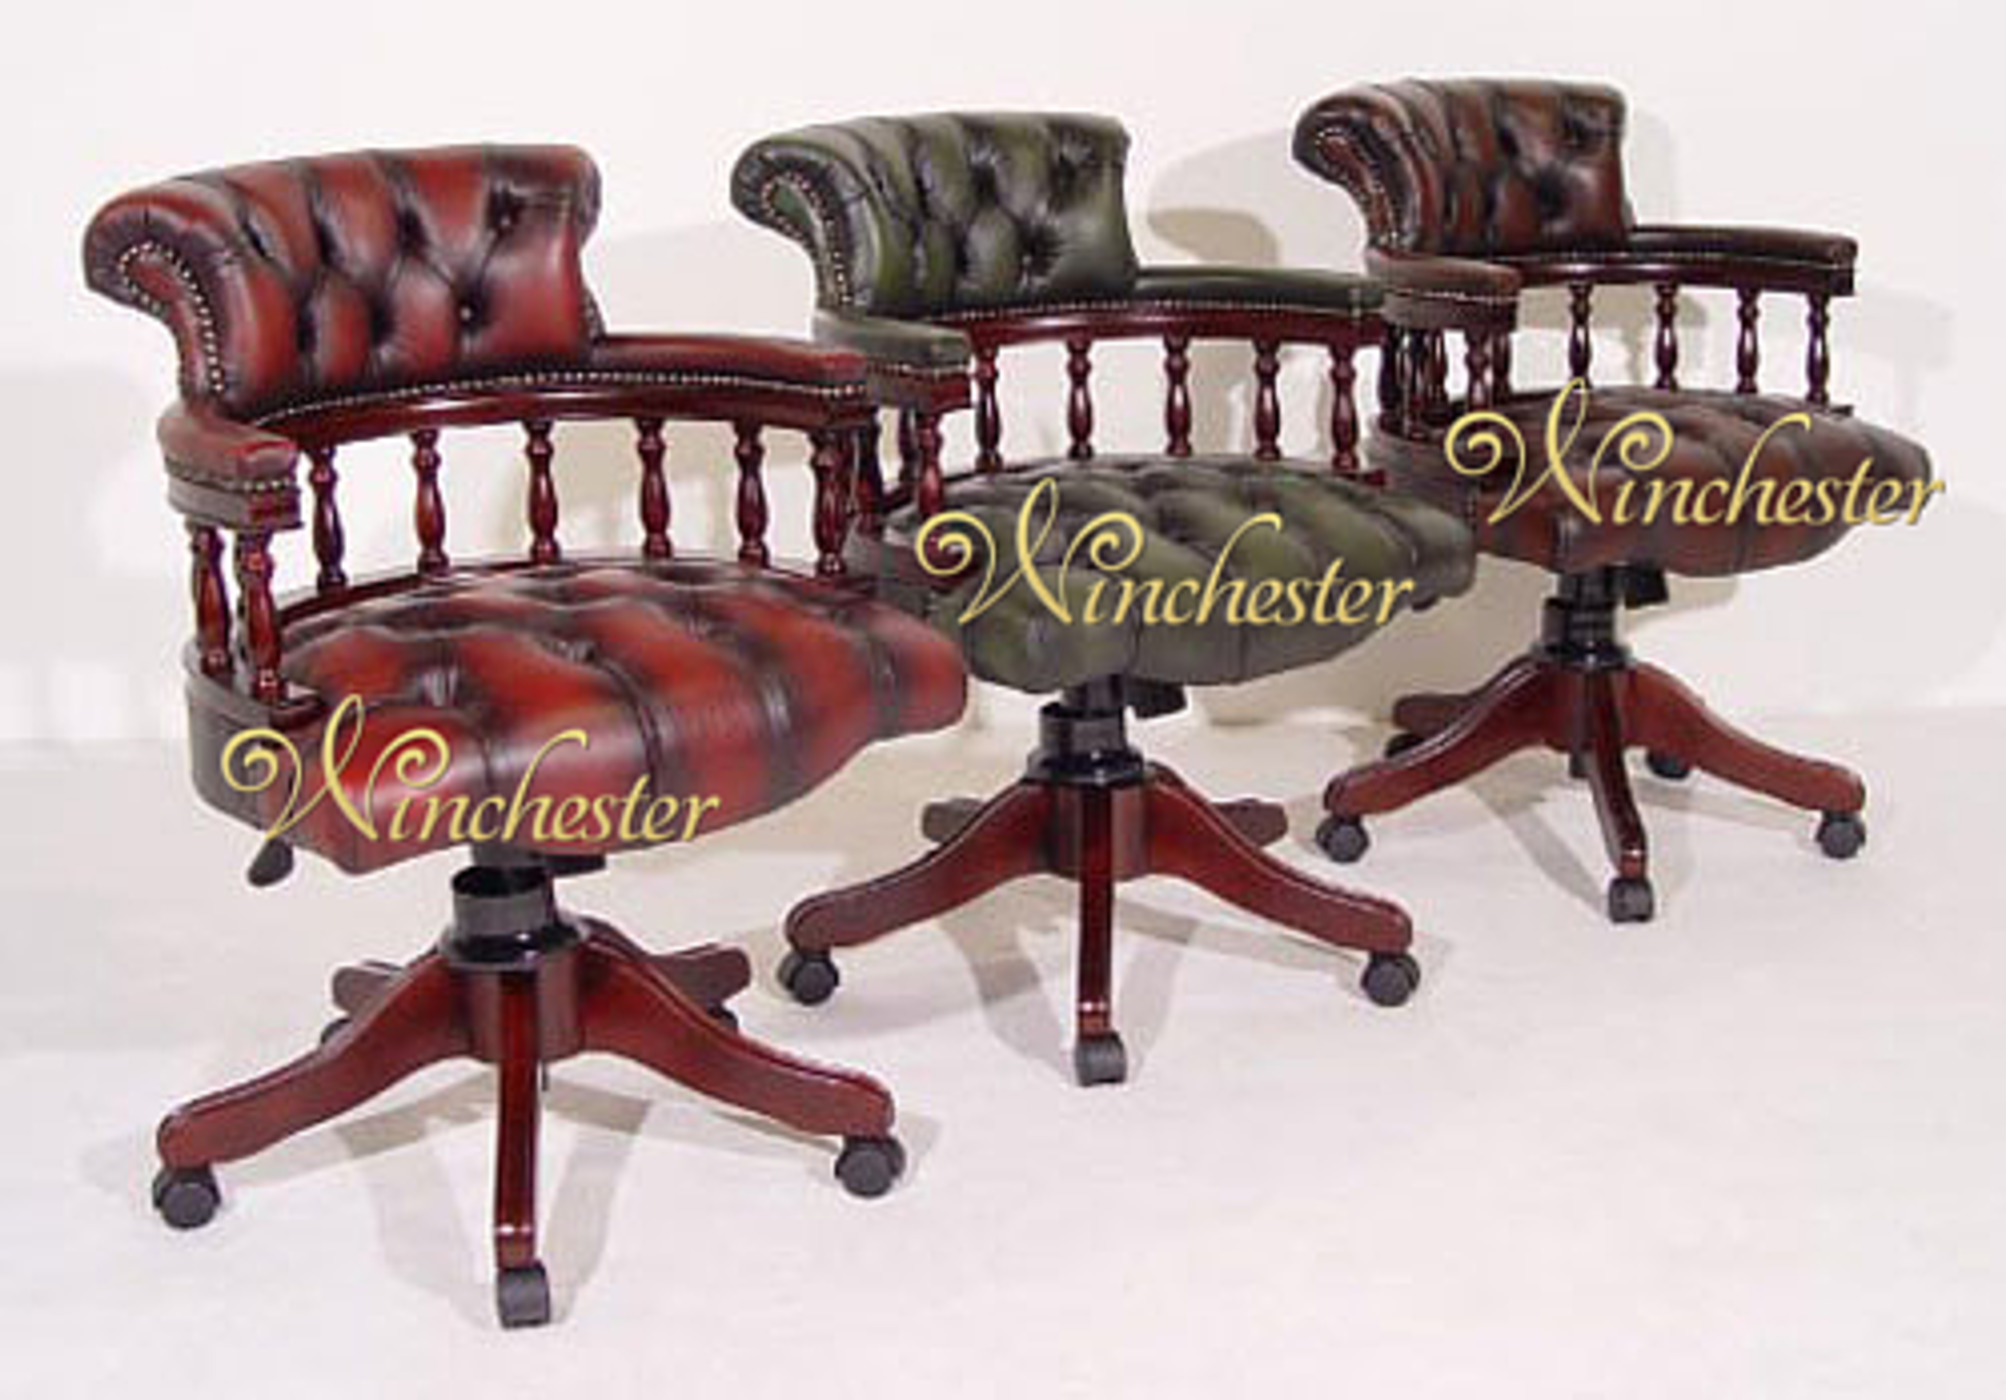 Captivating Chesterfield Captain Chair Antique Wc